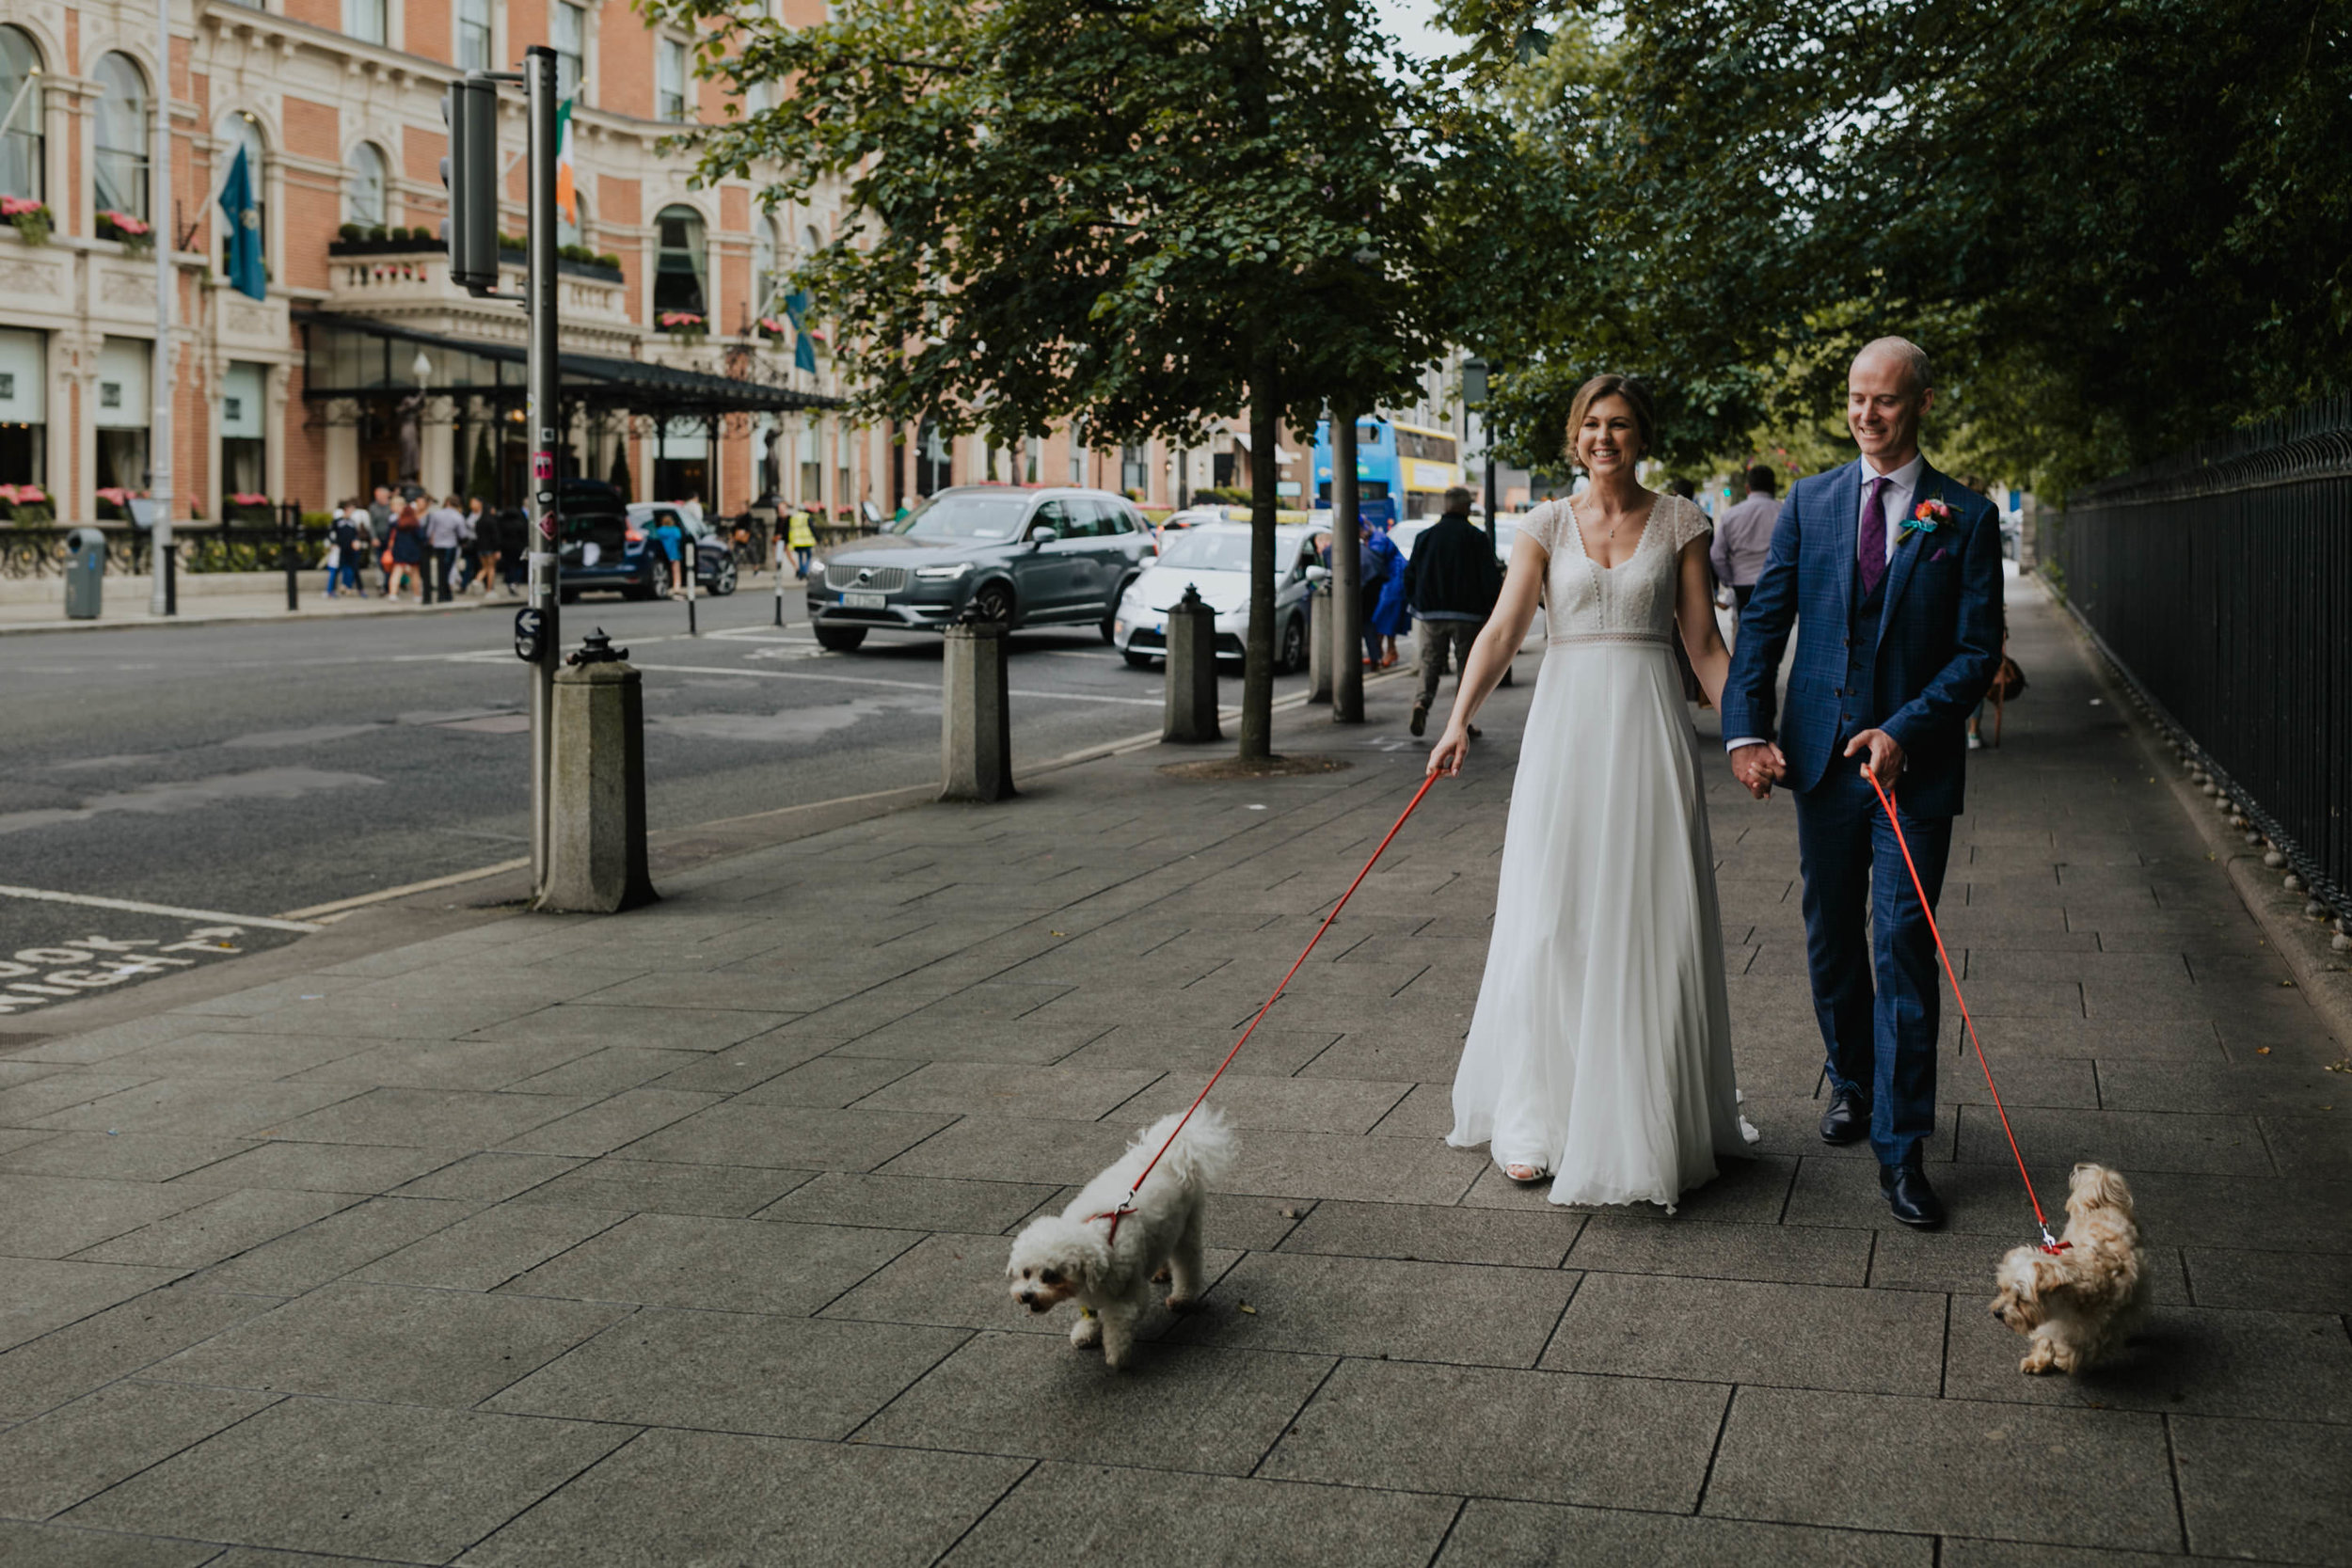 s&r_the_shelbourne_hotel_wedding_photographer_livia_figueiredo_18.jpg